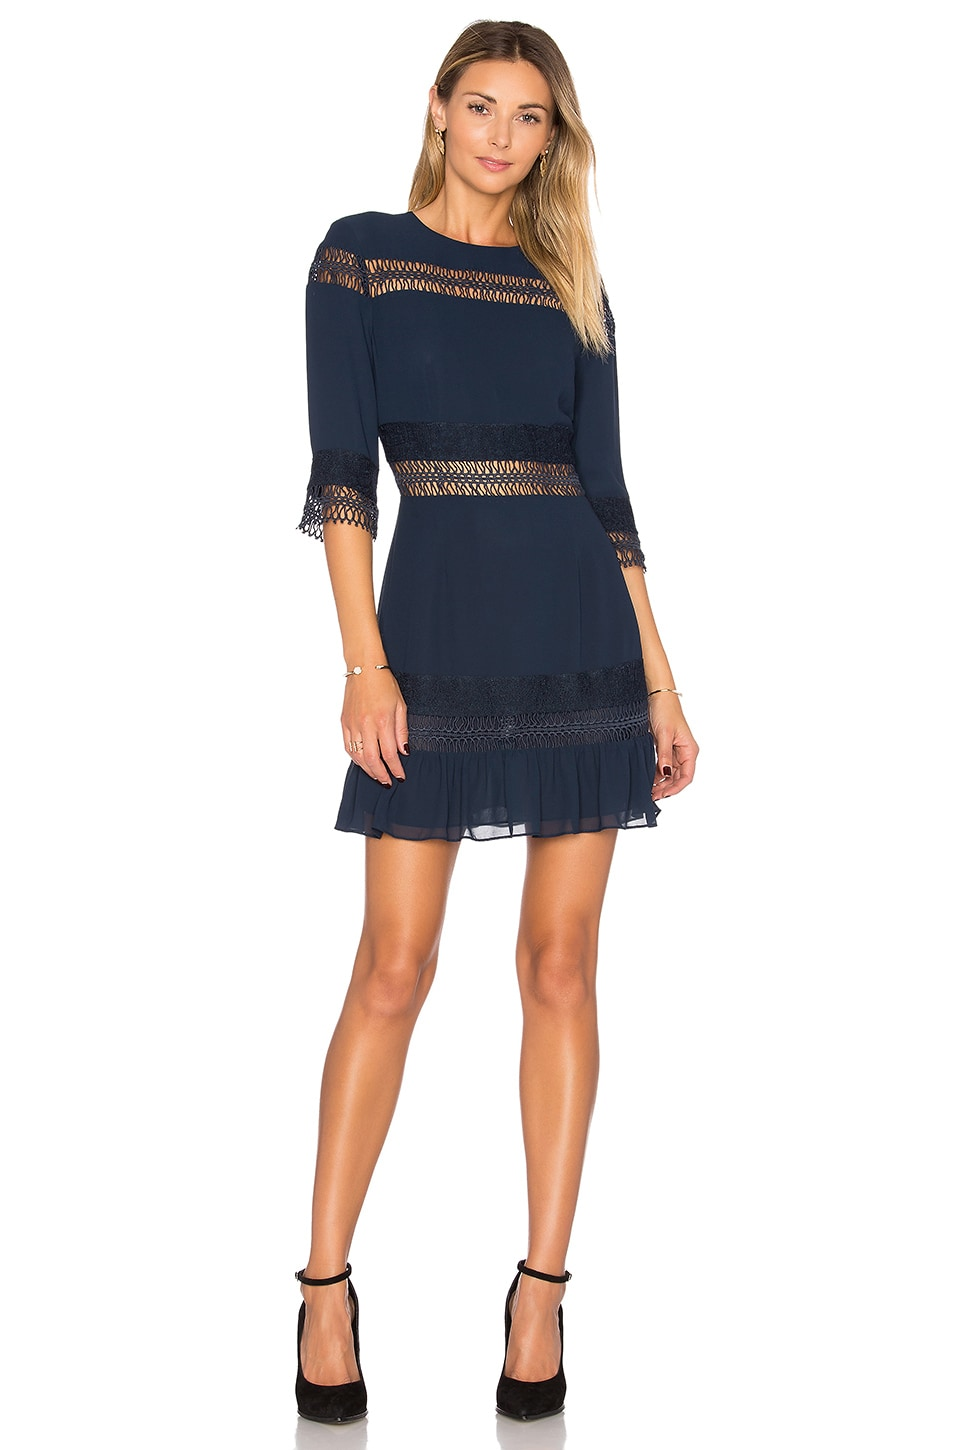 Tularosa Asher Dress in Deep Indigo